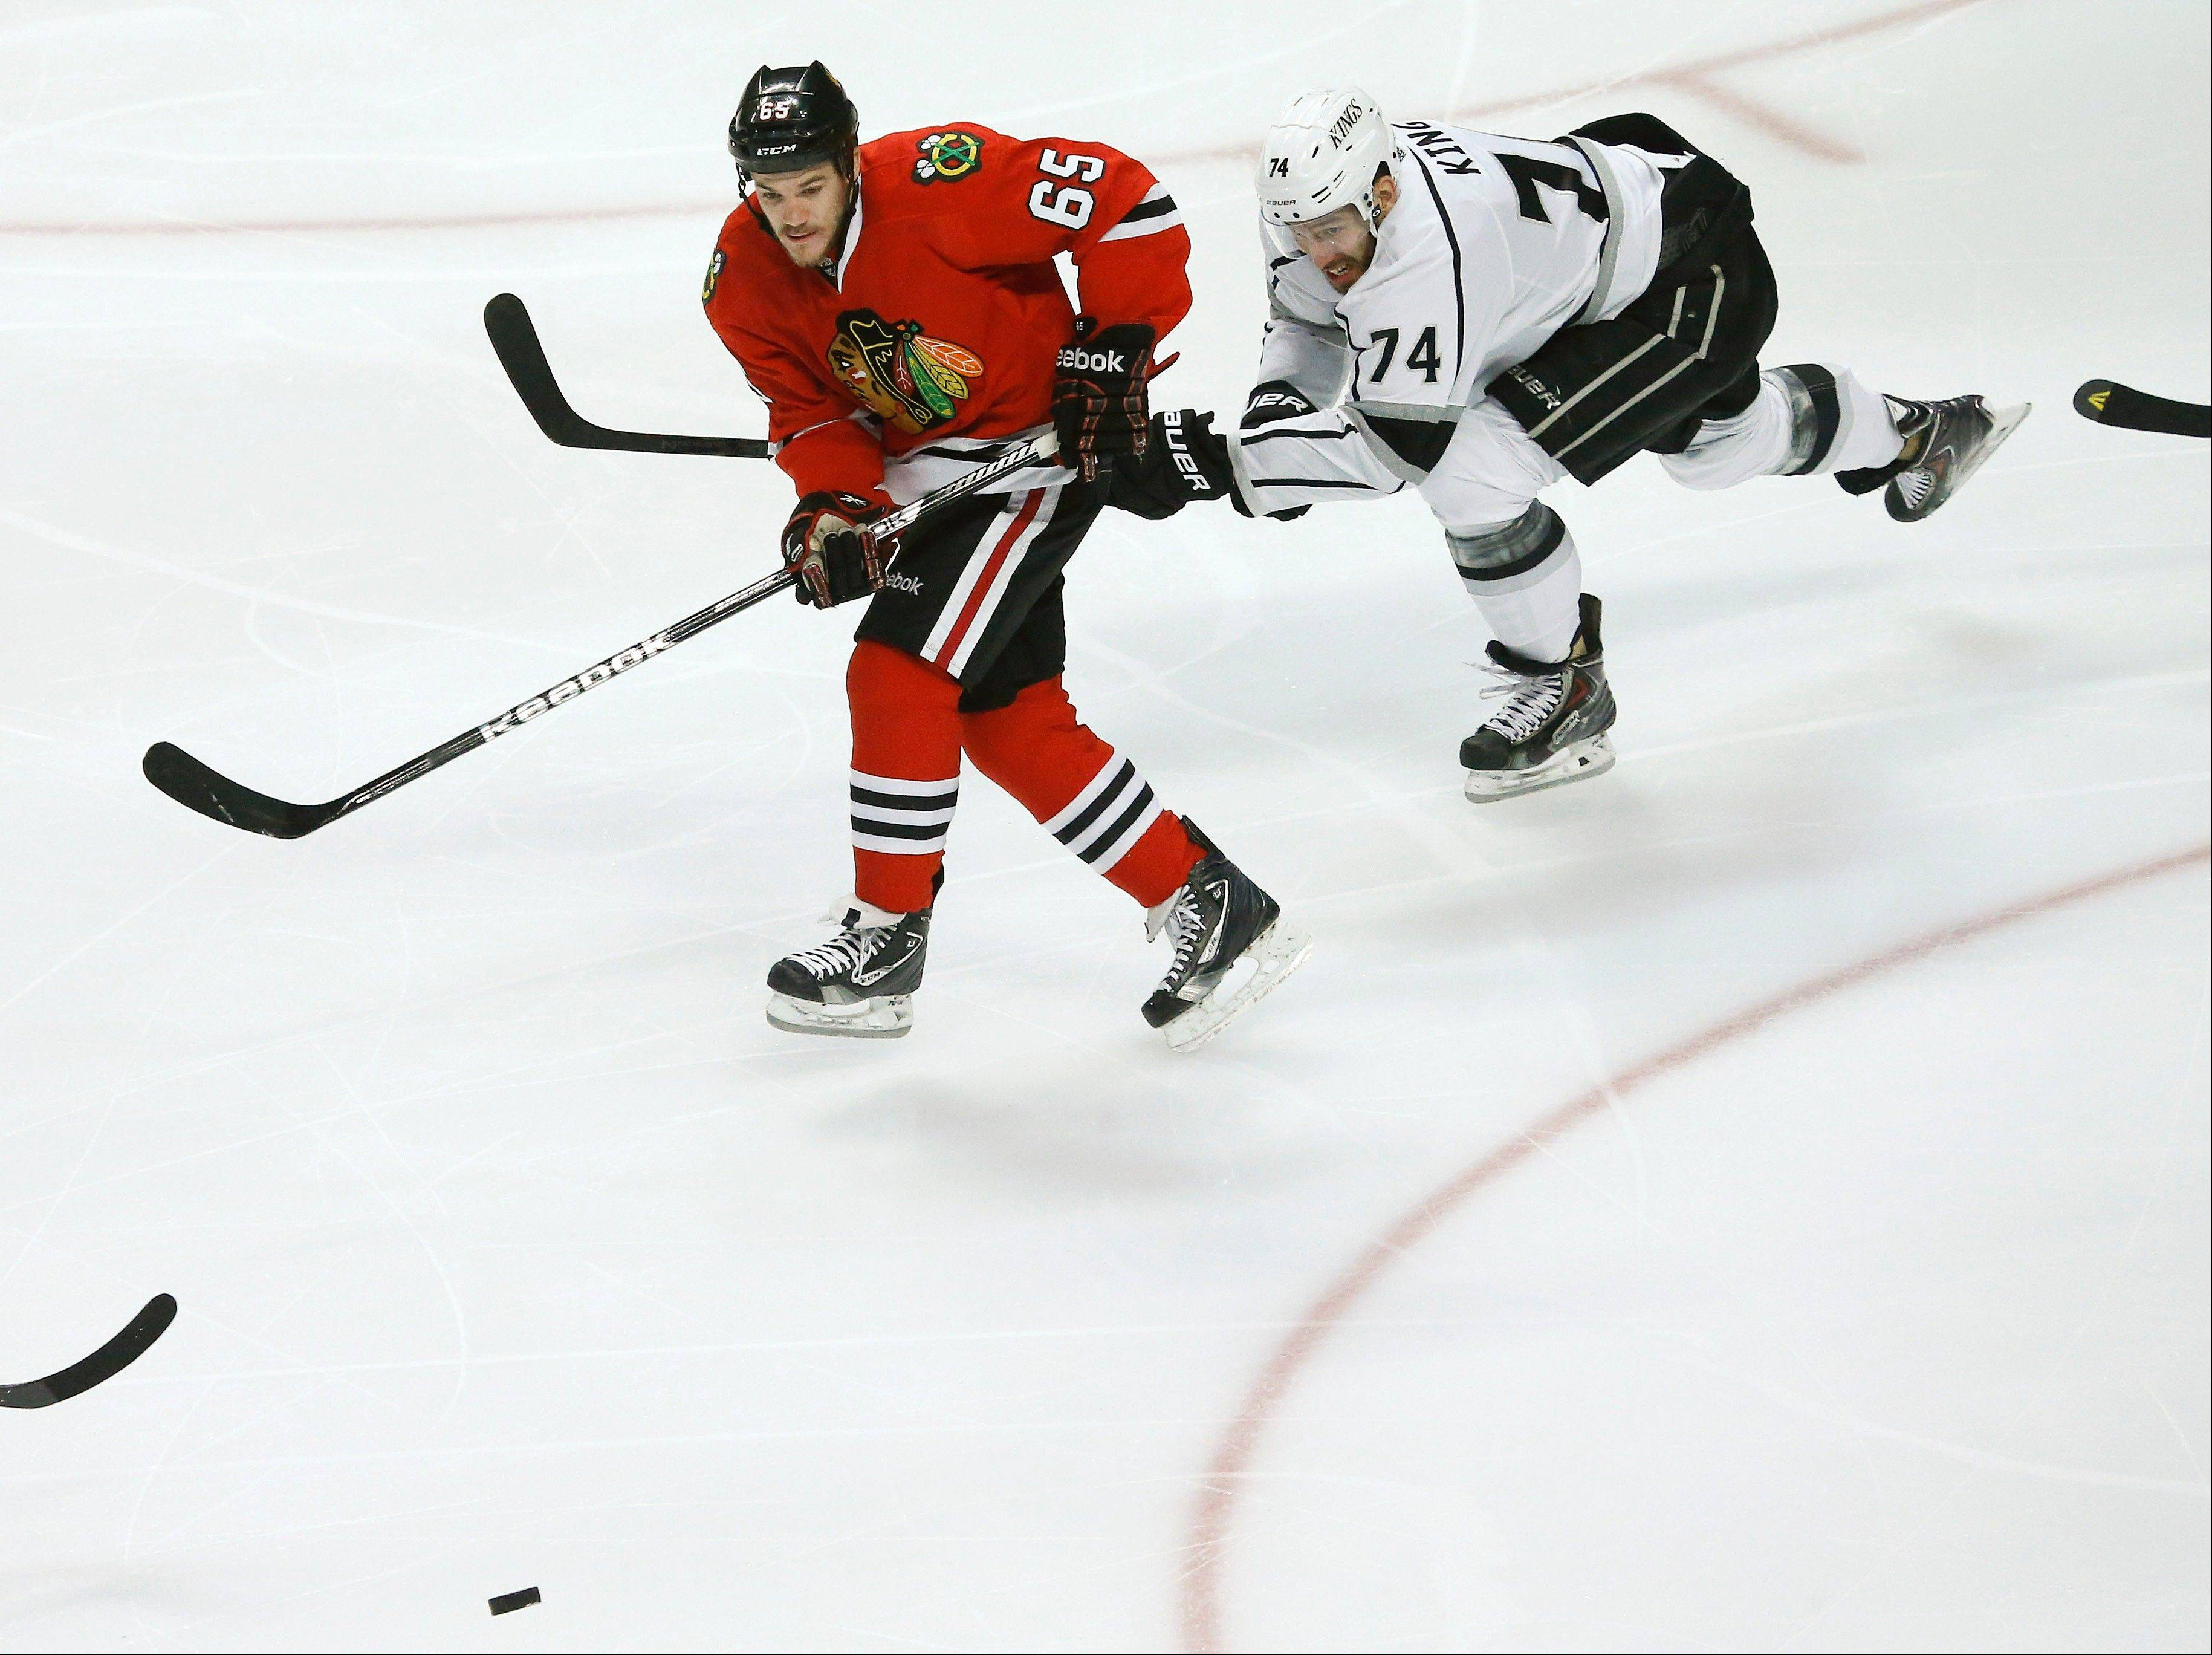 Chicago Blackhawks center Andrew Shaw (65) takes a pass as Los Angeles Kings center Dwight King (74) defends during the first period in Game 2 of the NHL hockey Stanley Cup Western Conference finals Sunday, June 2, 2013 in Chicago. Shaw scored on the play.